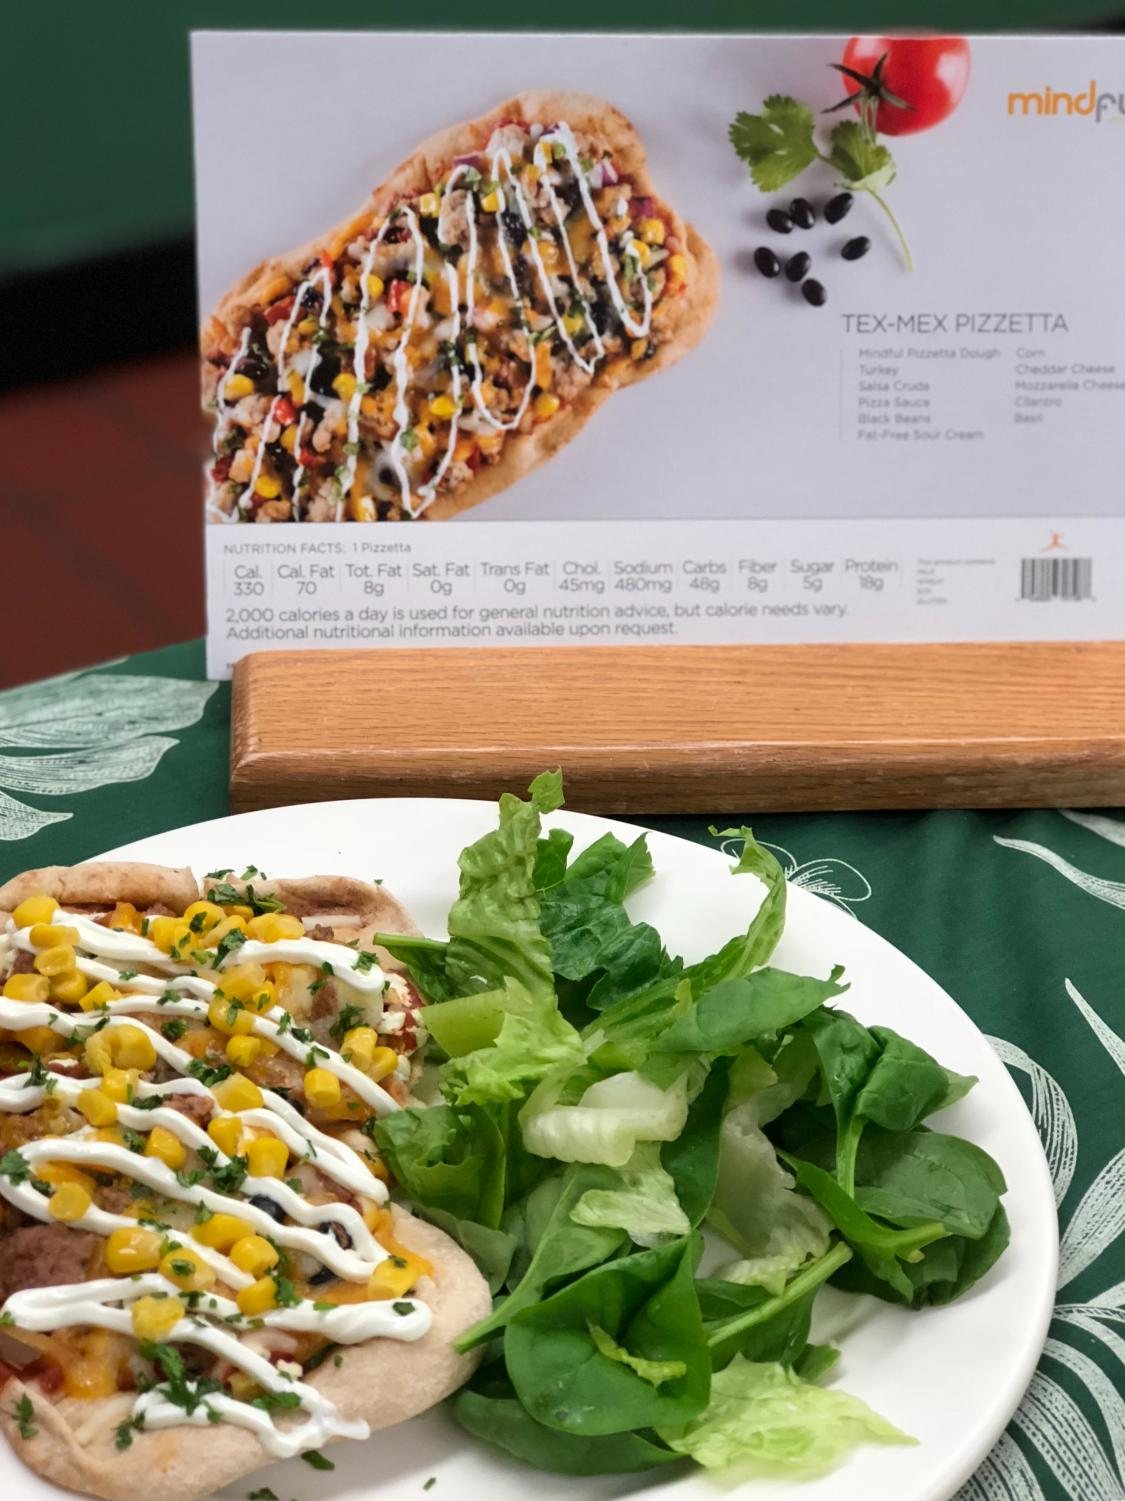 The school cafeteria is offering healthier options such as Tex-Mex pizza this year.